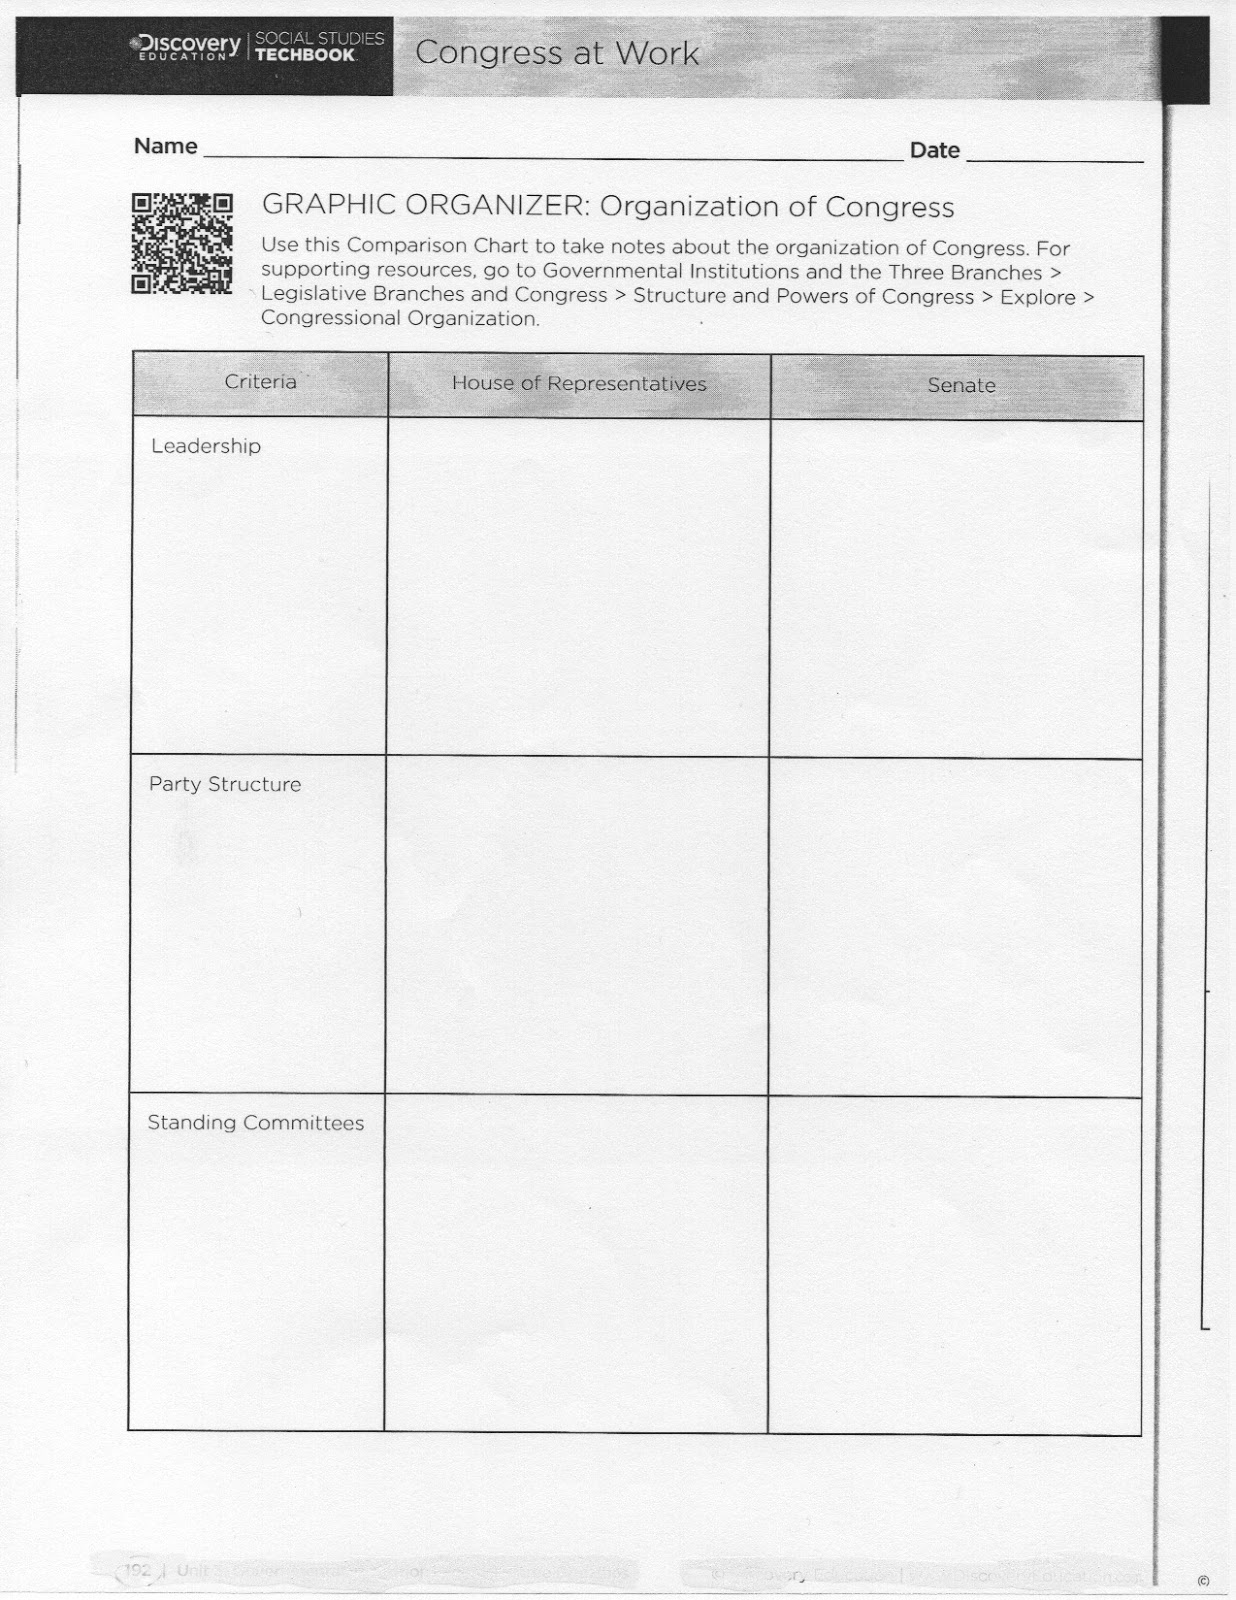 Coach Green S Class Unit 10 Worksheets